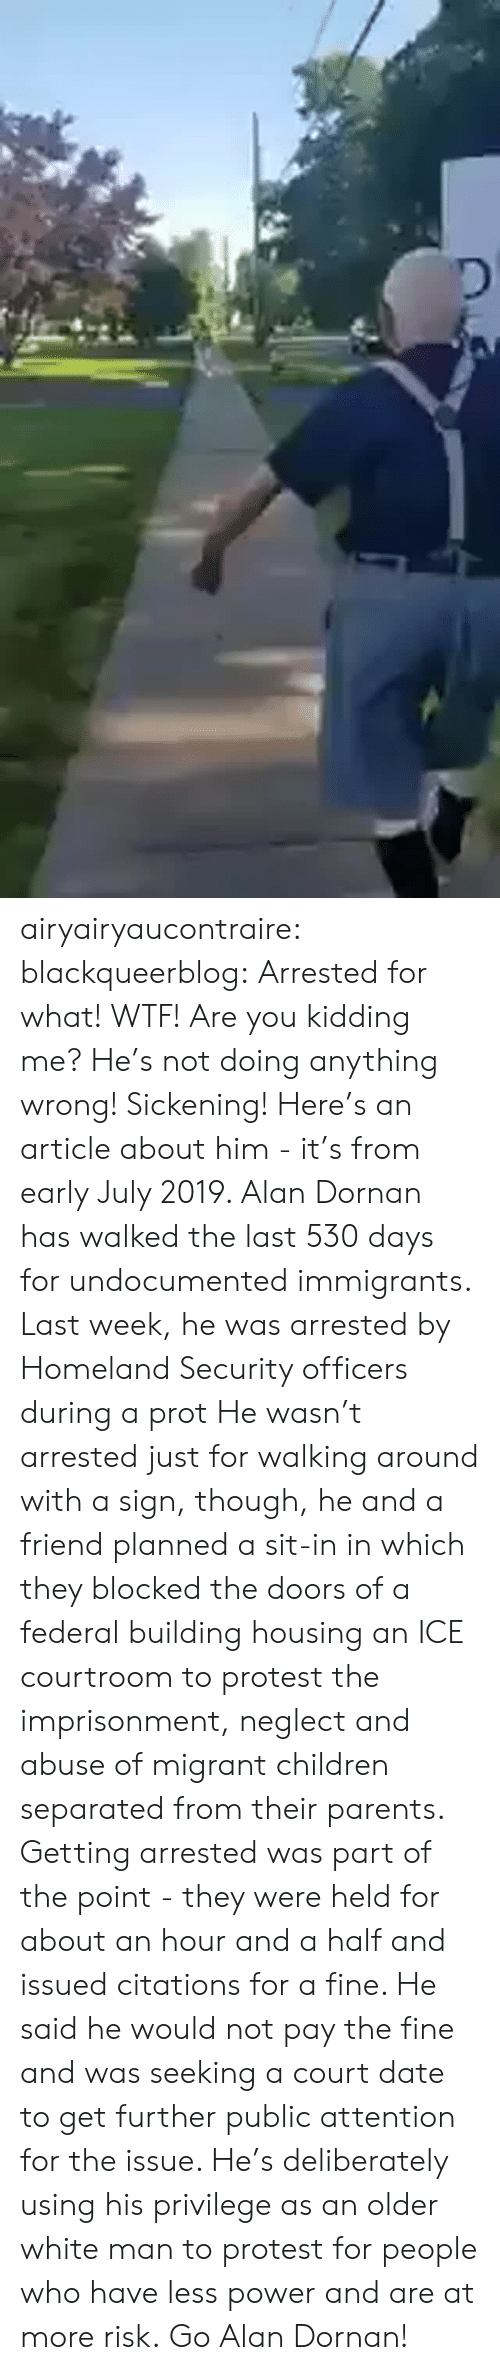 Immigrants: airyairyaucontraire:  blackqueerblog:  Arrested for what! WTF! Are you kidding me? He's not doing anything wrong! Sickening!  Here's an article about him - it's from early July 2019.  Alan Dornan has walked the last 530 days for undocumented immigrants. Last week, he was arrested by Homeland Security officers during a prot He wasn't arrested just for walking around with a sign, though, he and a friend planned a sit-in in which they blocked the doors of a federal building housing an ICE courtroom to protest the imprisonment, neglect and abuse of migrant children separated from their parents.  Getting arrested was part of the point - they were held for about an hour and a half and issued citations for a fine. He said he would not pay the fine and was seeking a court date to get further public attention for the issue.  He's deliberately using his privilege as an older white man to protest for people who have less power and are at more risk. Go Alan Dornan!